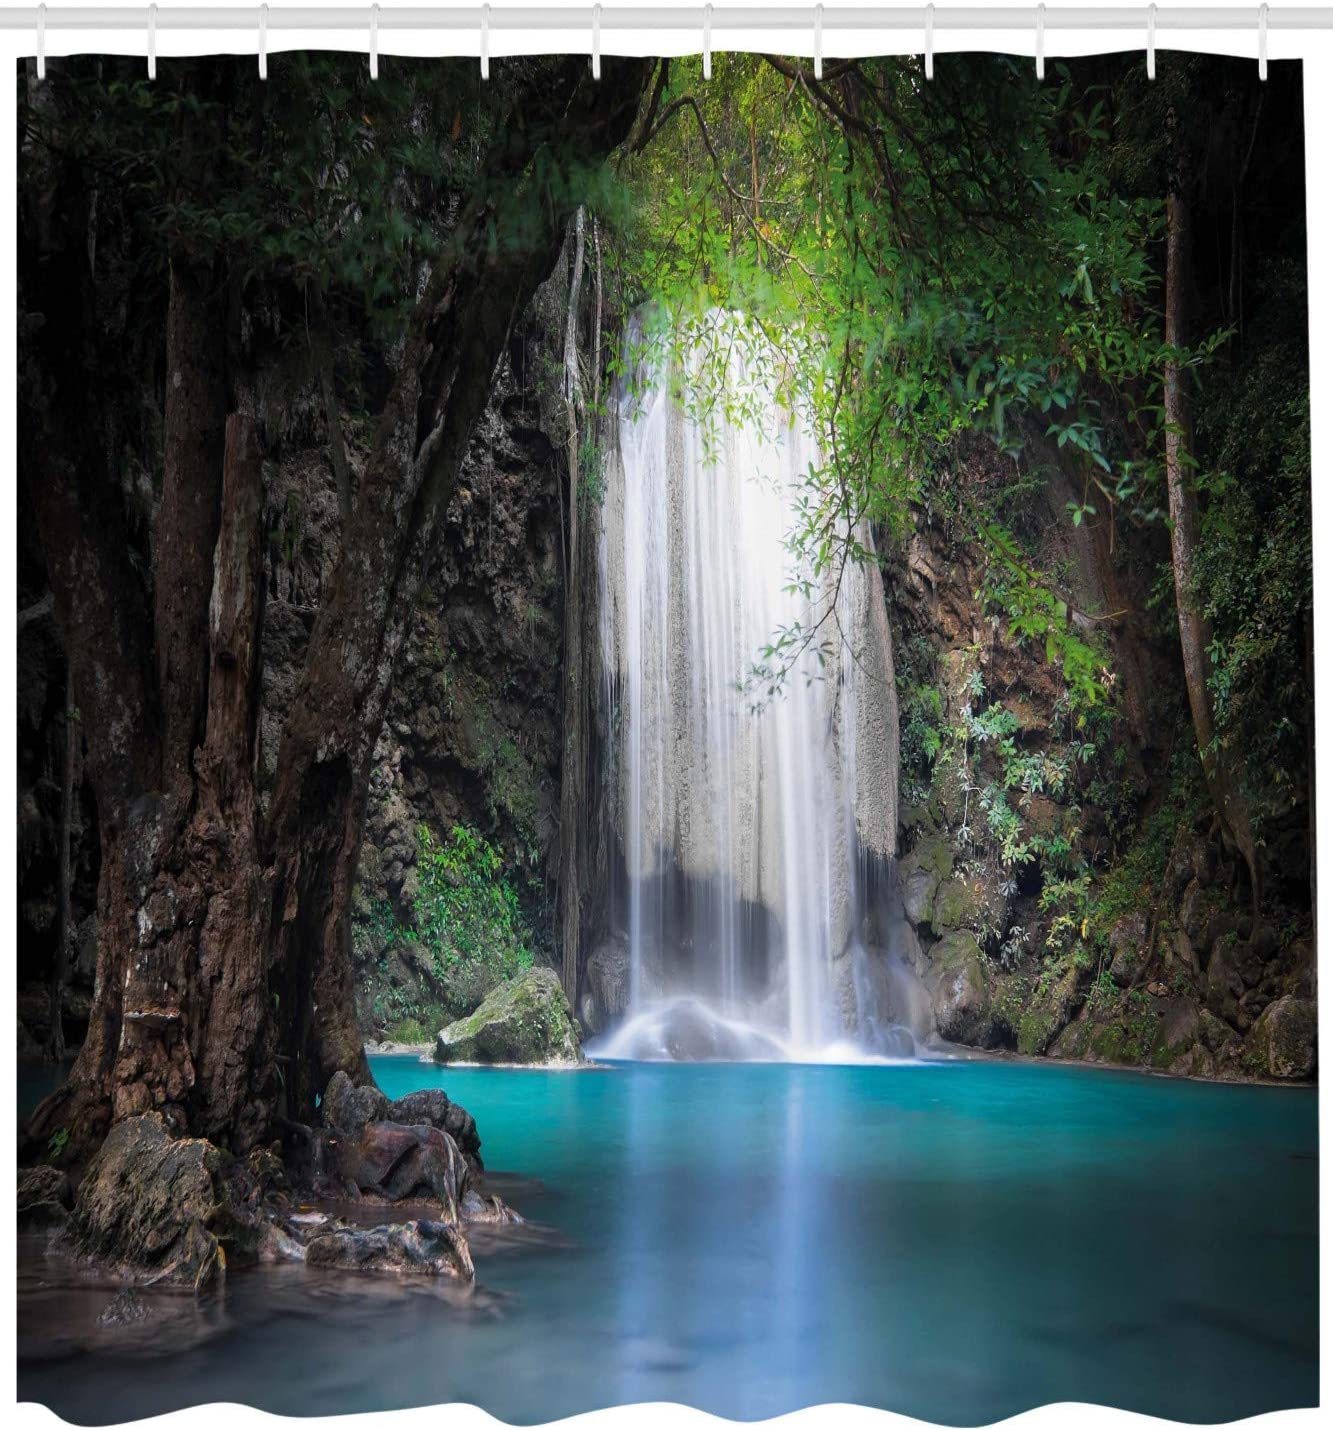 Fabric Bathroom Decor Set with Hooks Turquoise Brown Fern Green 70 Inches Surreal Scene Deep Down in Rainforest with Waterfall Idyllic Image Ambesonne Nature Shower Curtain